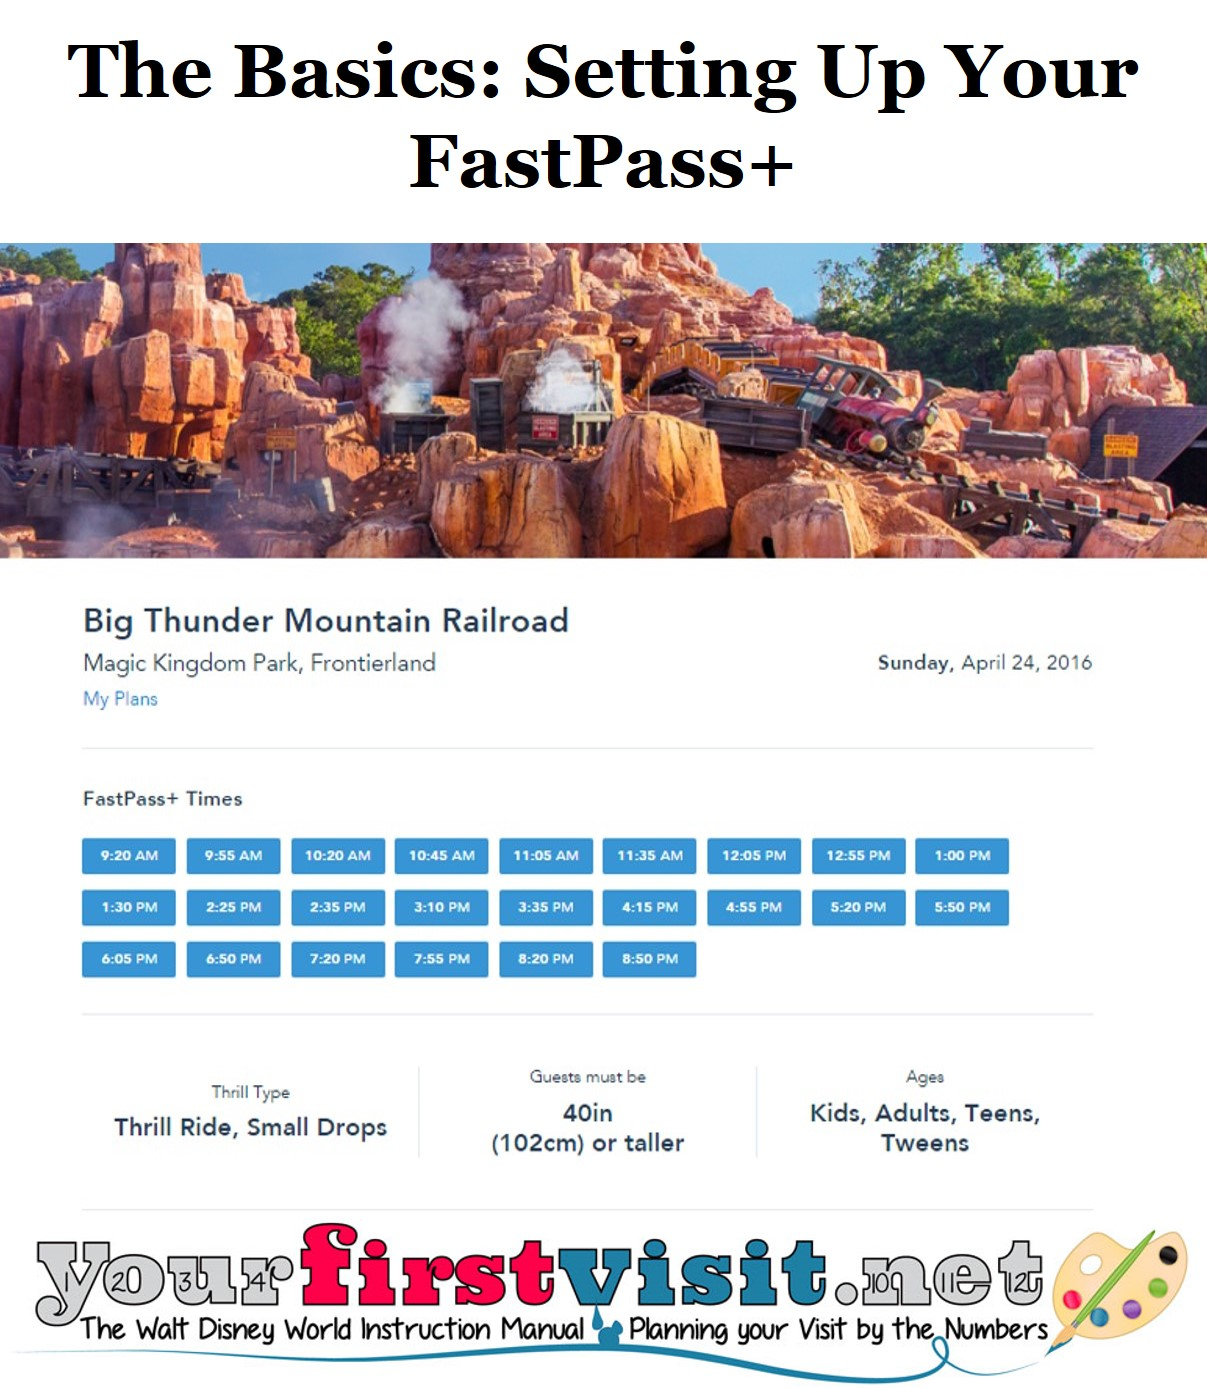 The Basics - Setting Up Your FastPass+ from yourfirstvisit.net